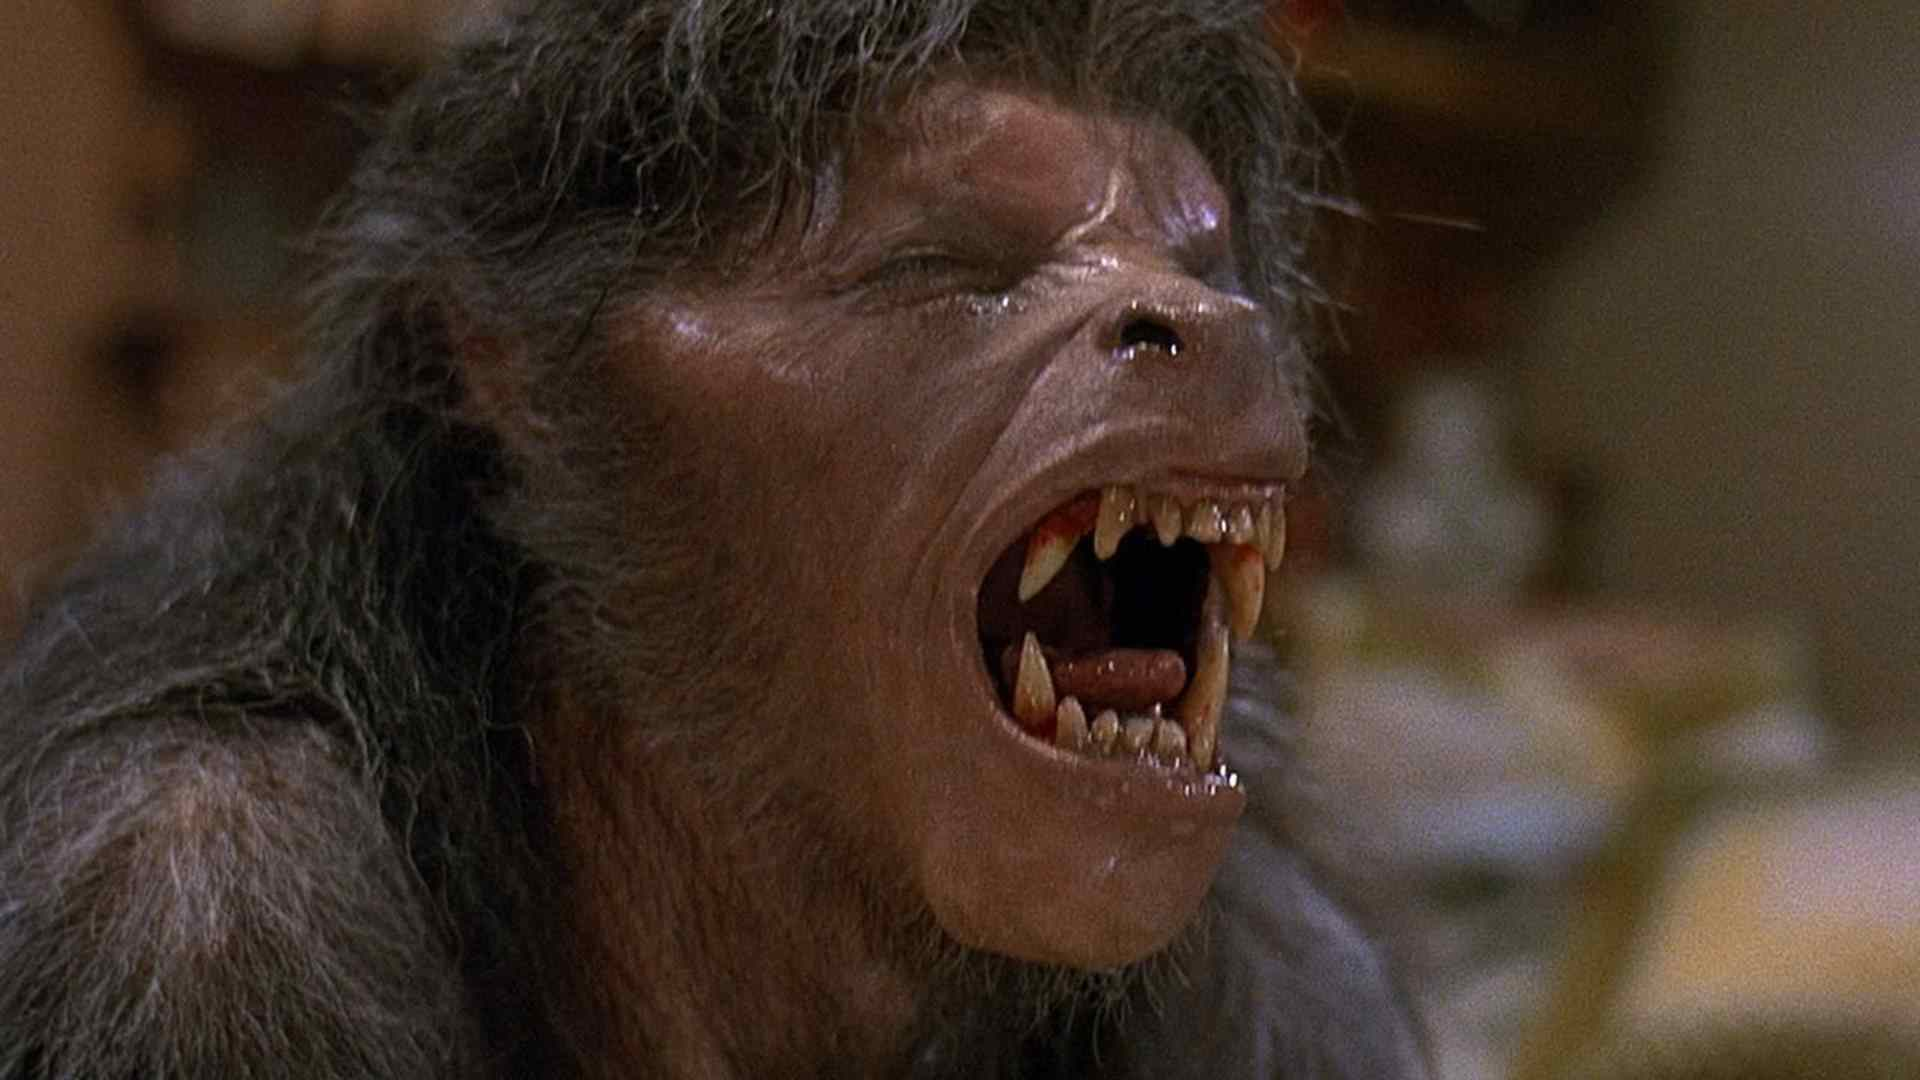 The movie poster for An American Werewolf in London directed by John Landis.